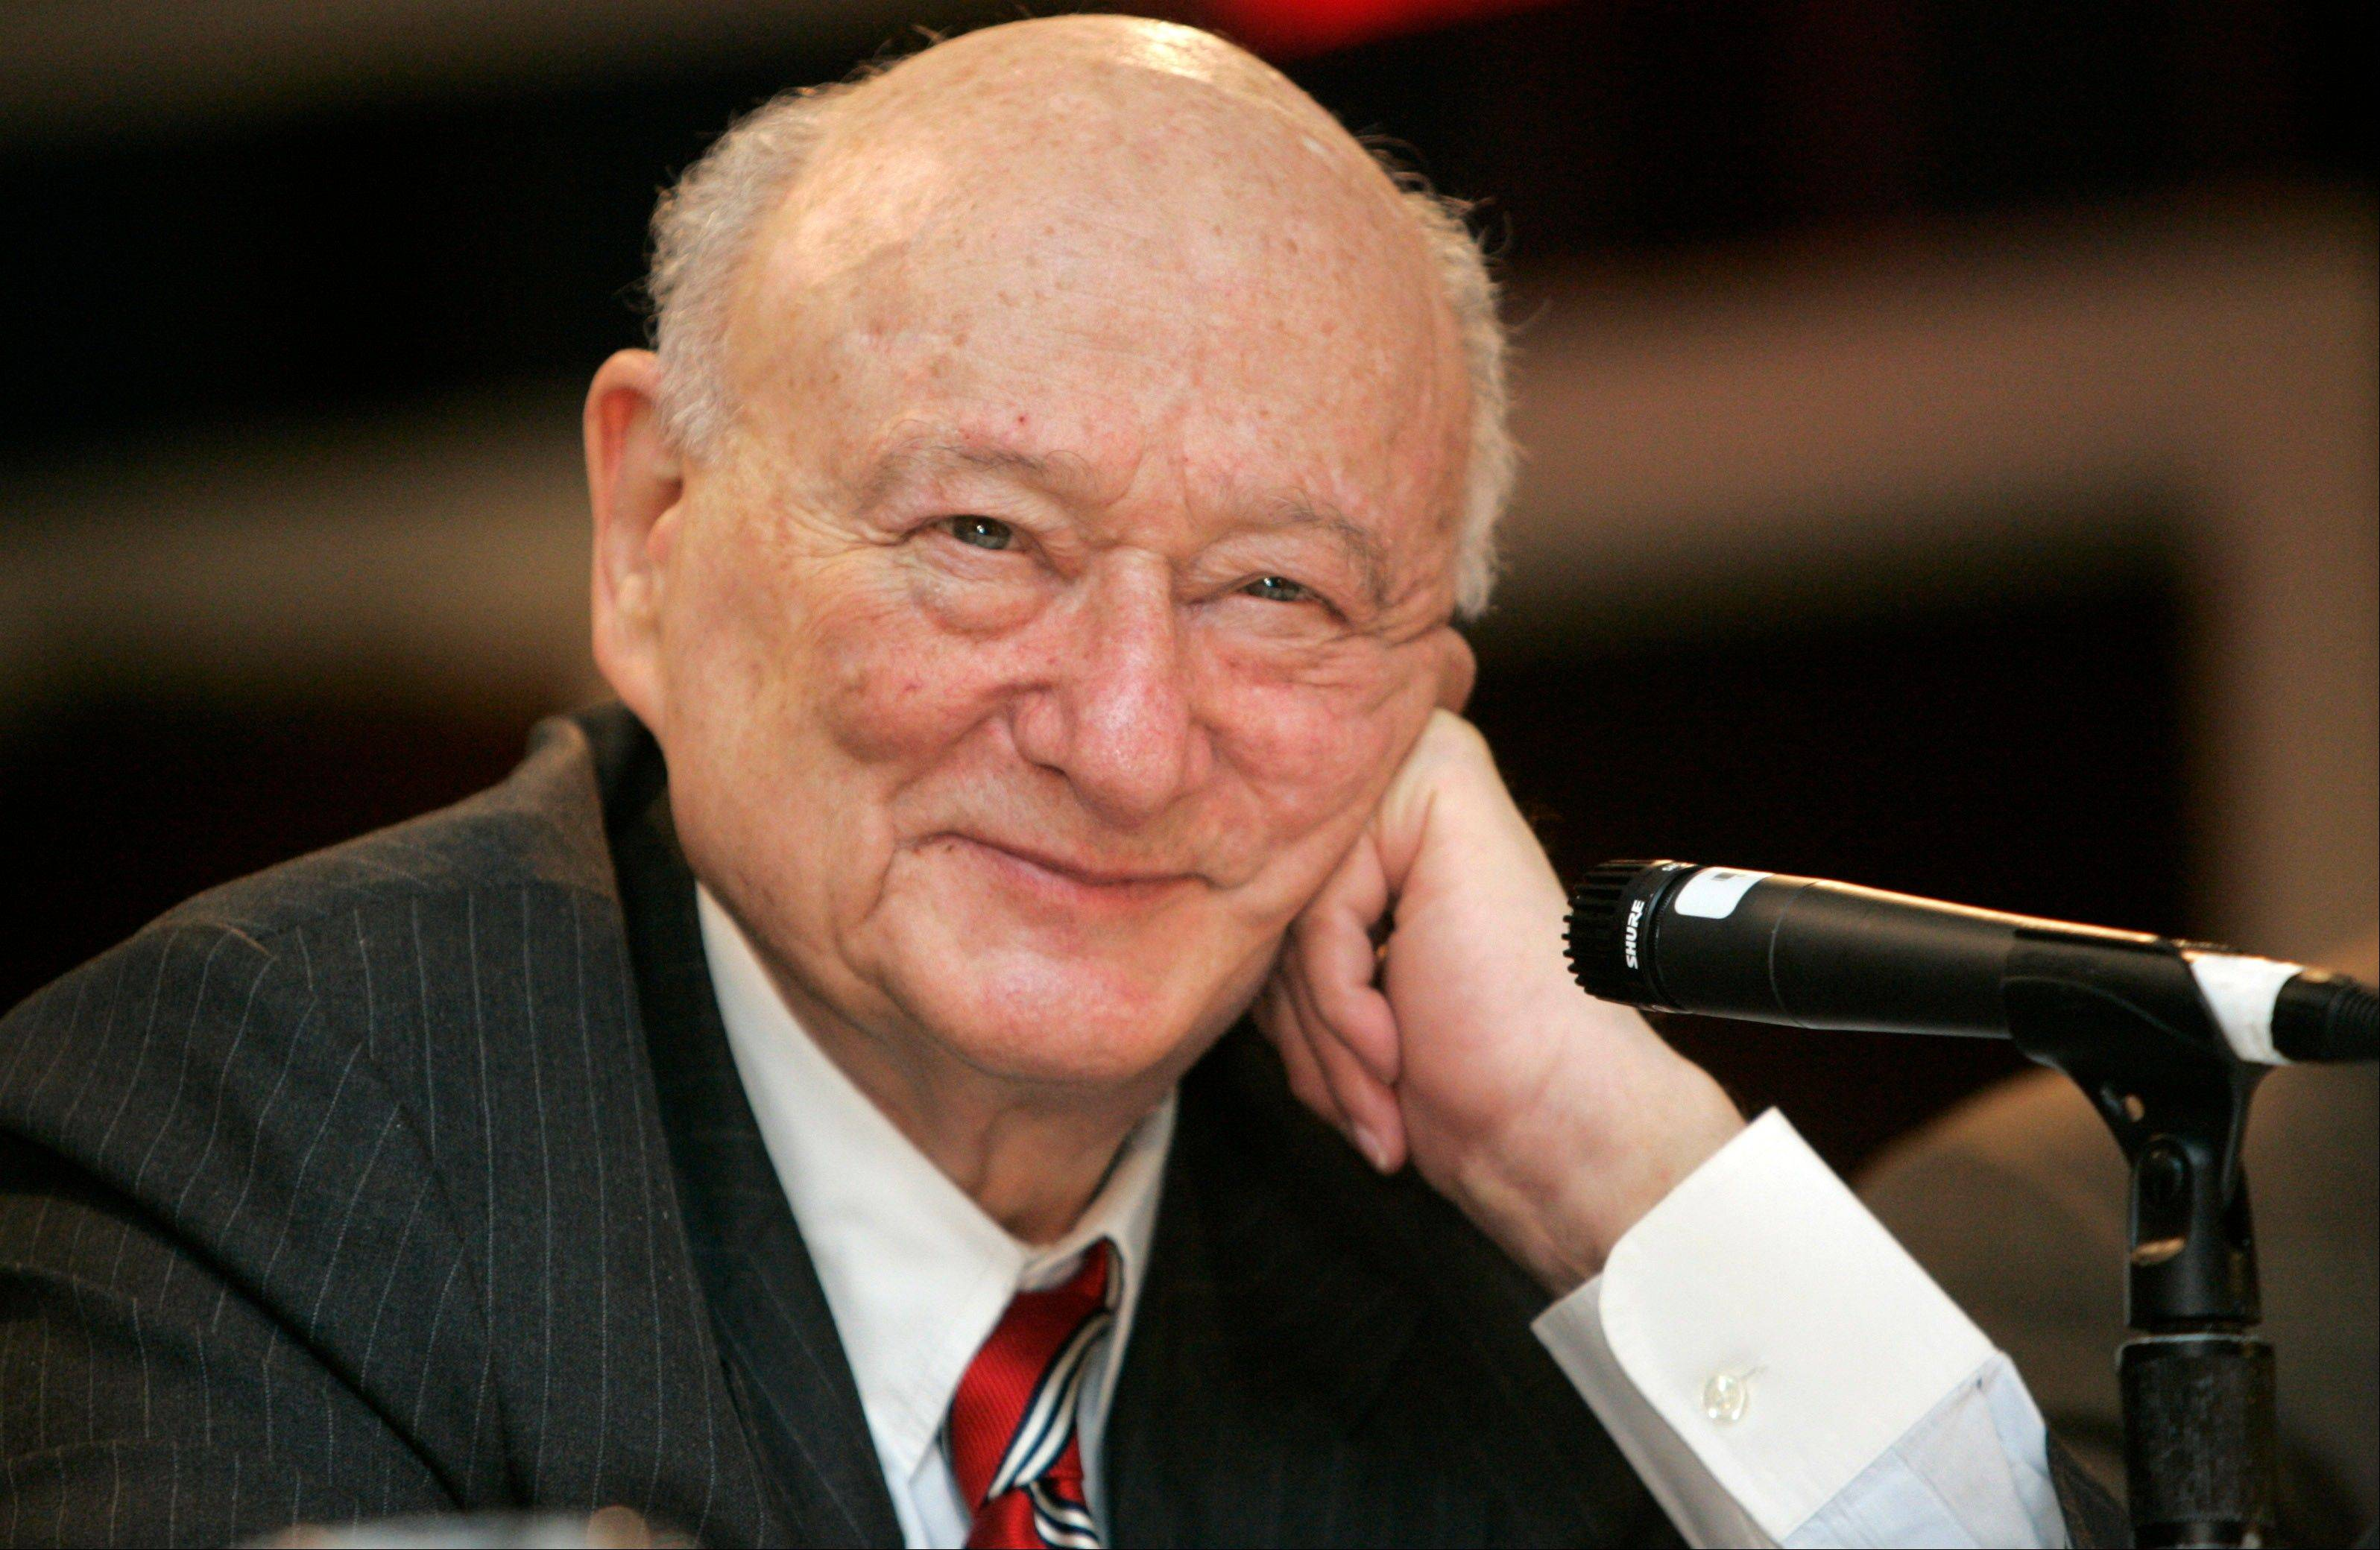 In this April 18, 2007, file photo, former New York Mayor Ed Koch listens during the 9th annual National Action Network convention in New York. Koch, the combative politician who rescued the city from near-financial ruin during three City Hall terms, died Friday, Feb. 1, 2013. He was 88.